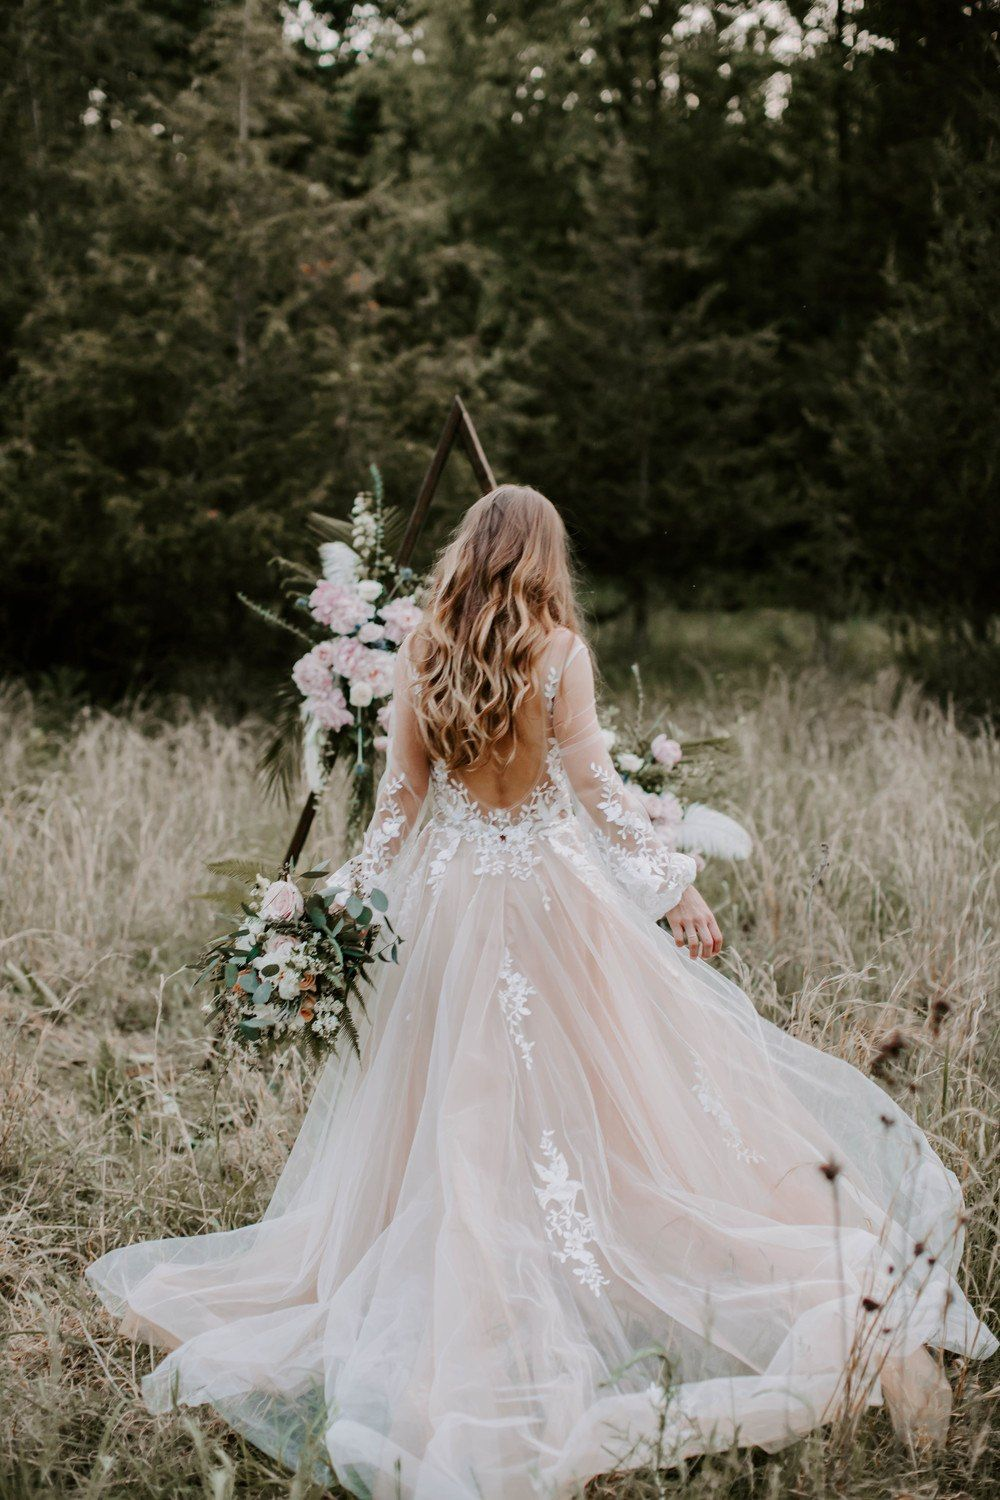 Chicago wedding dress shops  Early Fall Woodland Wedding Inspiration  Happily Ever After